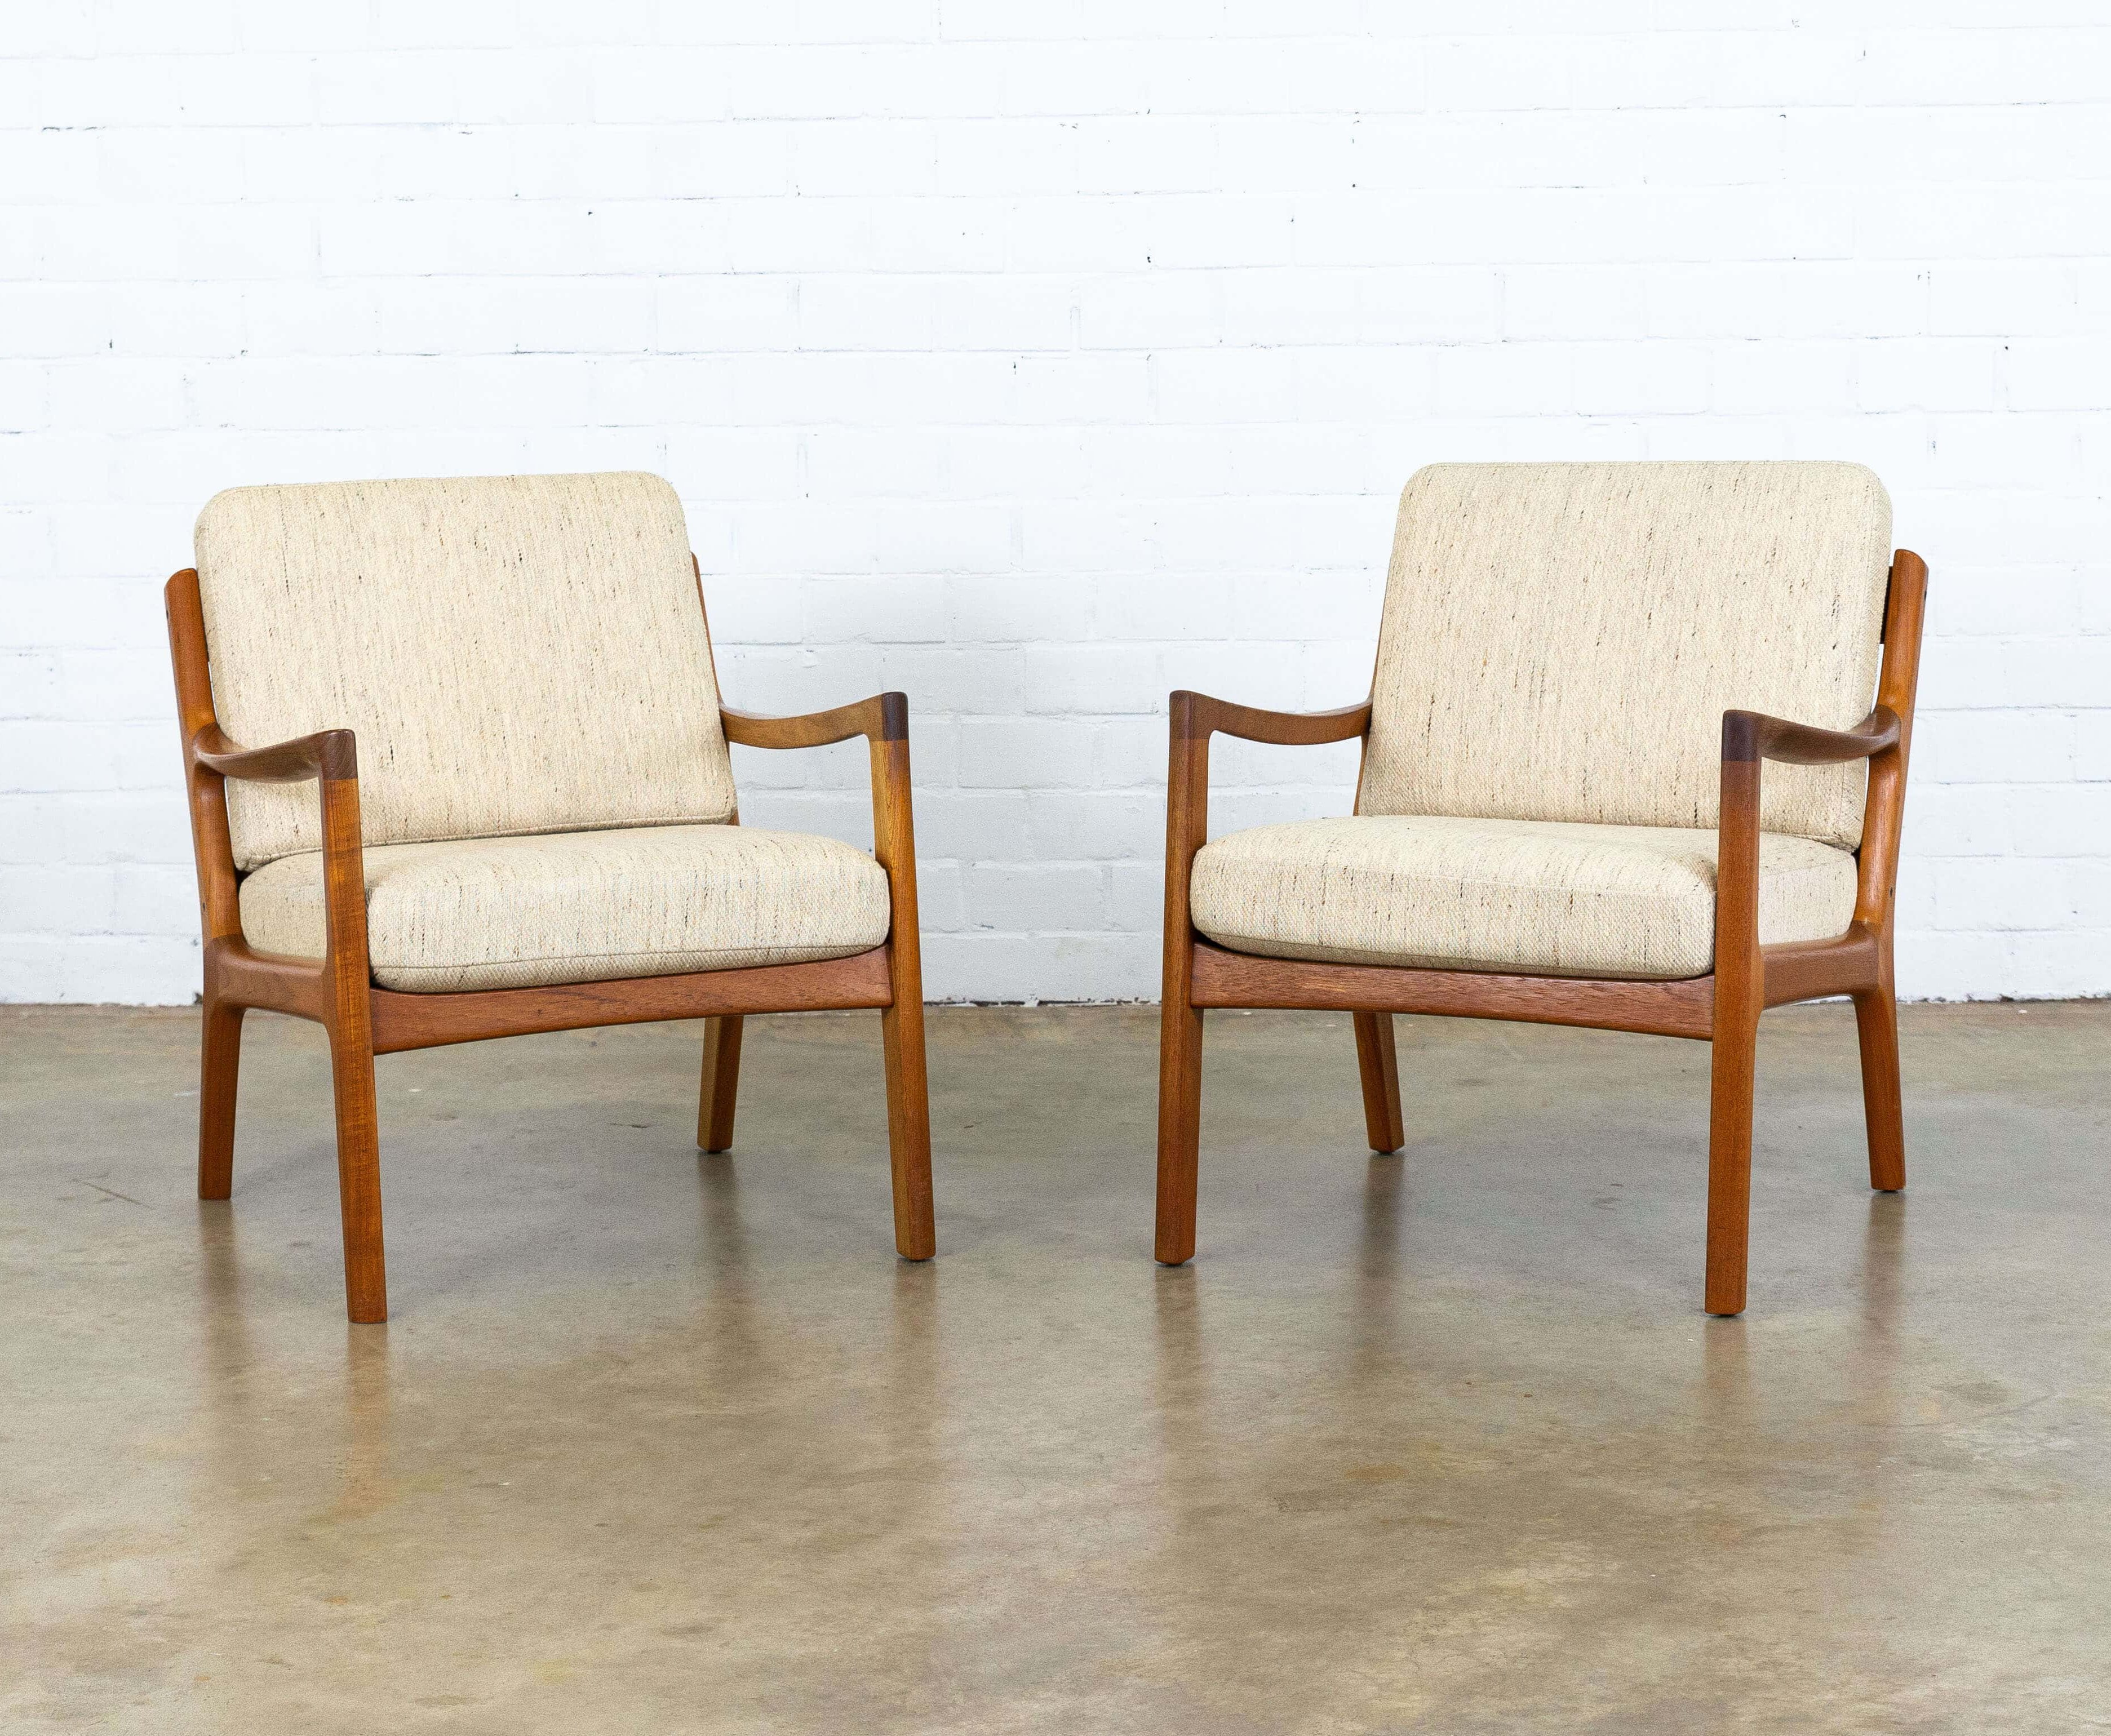 Super Pair Of Senator Arm Chairs By Ole Wanscher For France Son 1950S Gmtry Best Dining Table And Chair Ideas Images Gmtryco